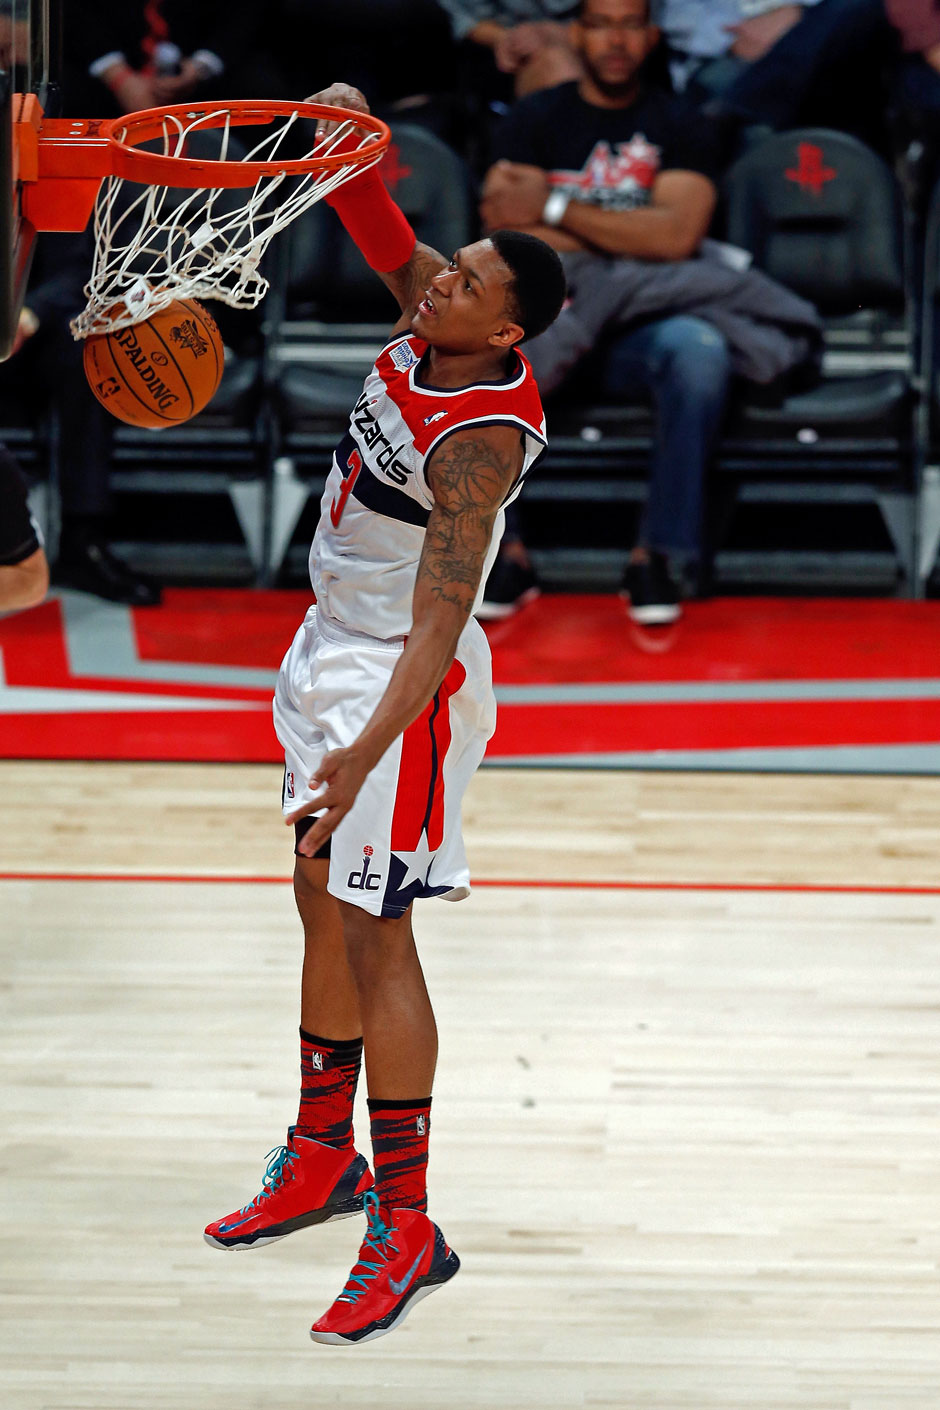 Shooting Guard: Bradley Beal (13,9 Punkte, 38,6 % Dreierquote)